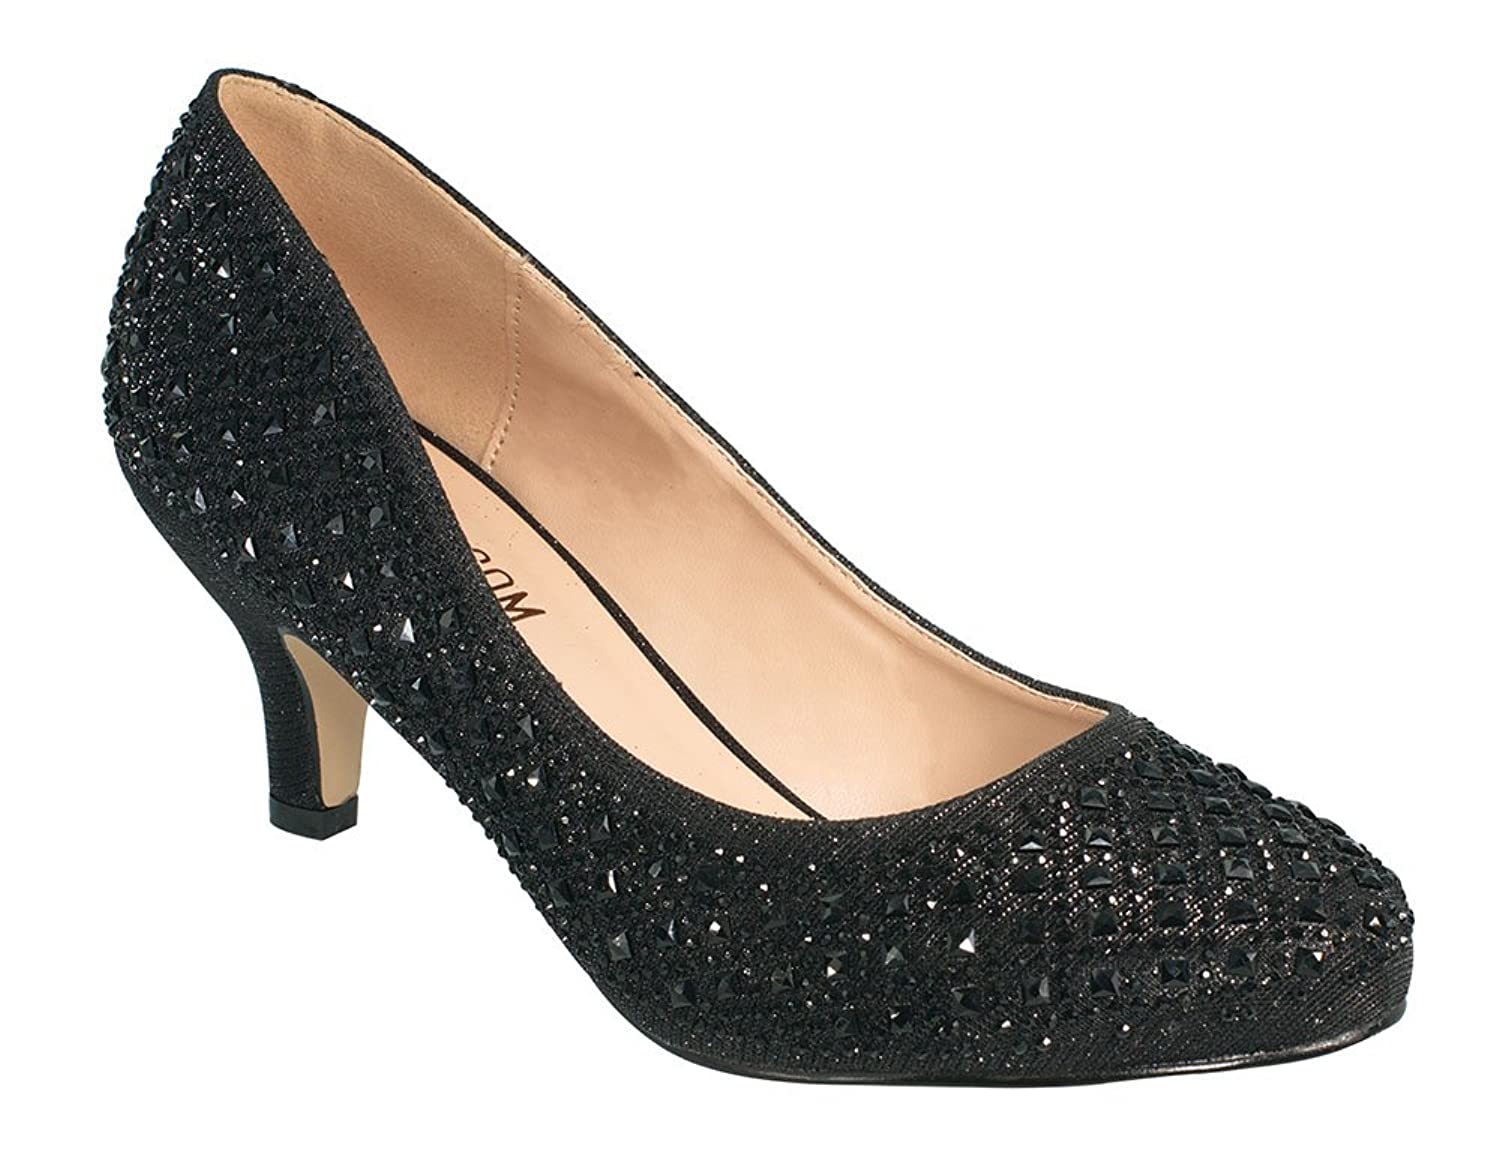 De Blossom Collection Women's Shiny Fabric Patterned Rhinestone Embellished Closed Toe Low Heel Pump